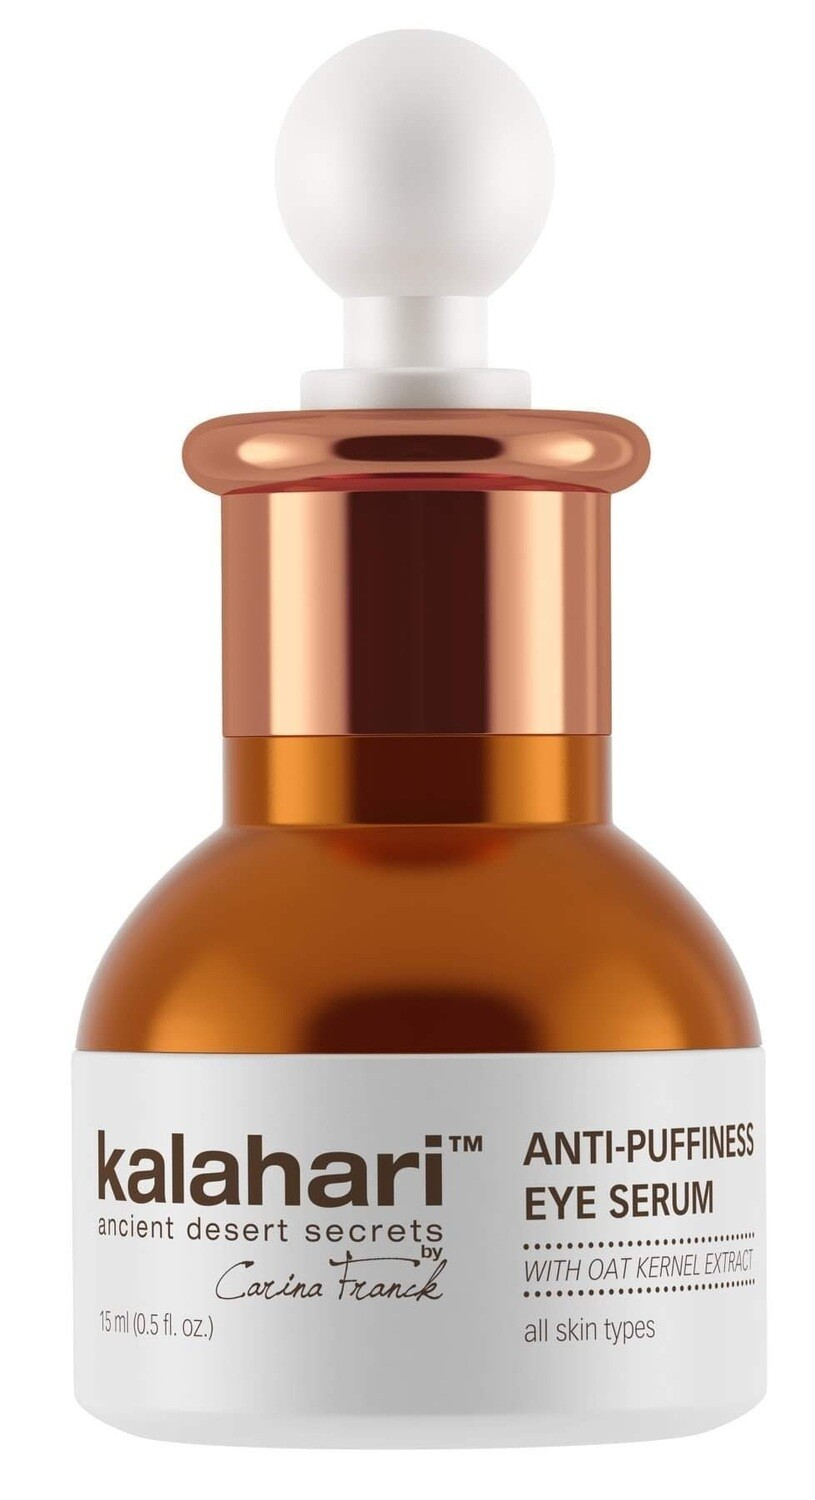 Anti-puffiness Eye Serum